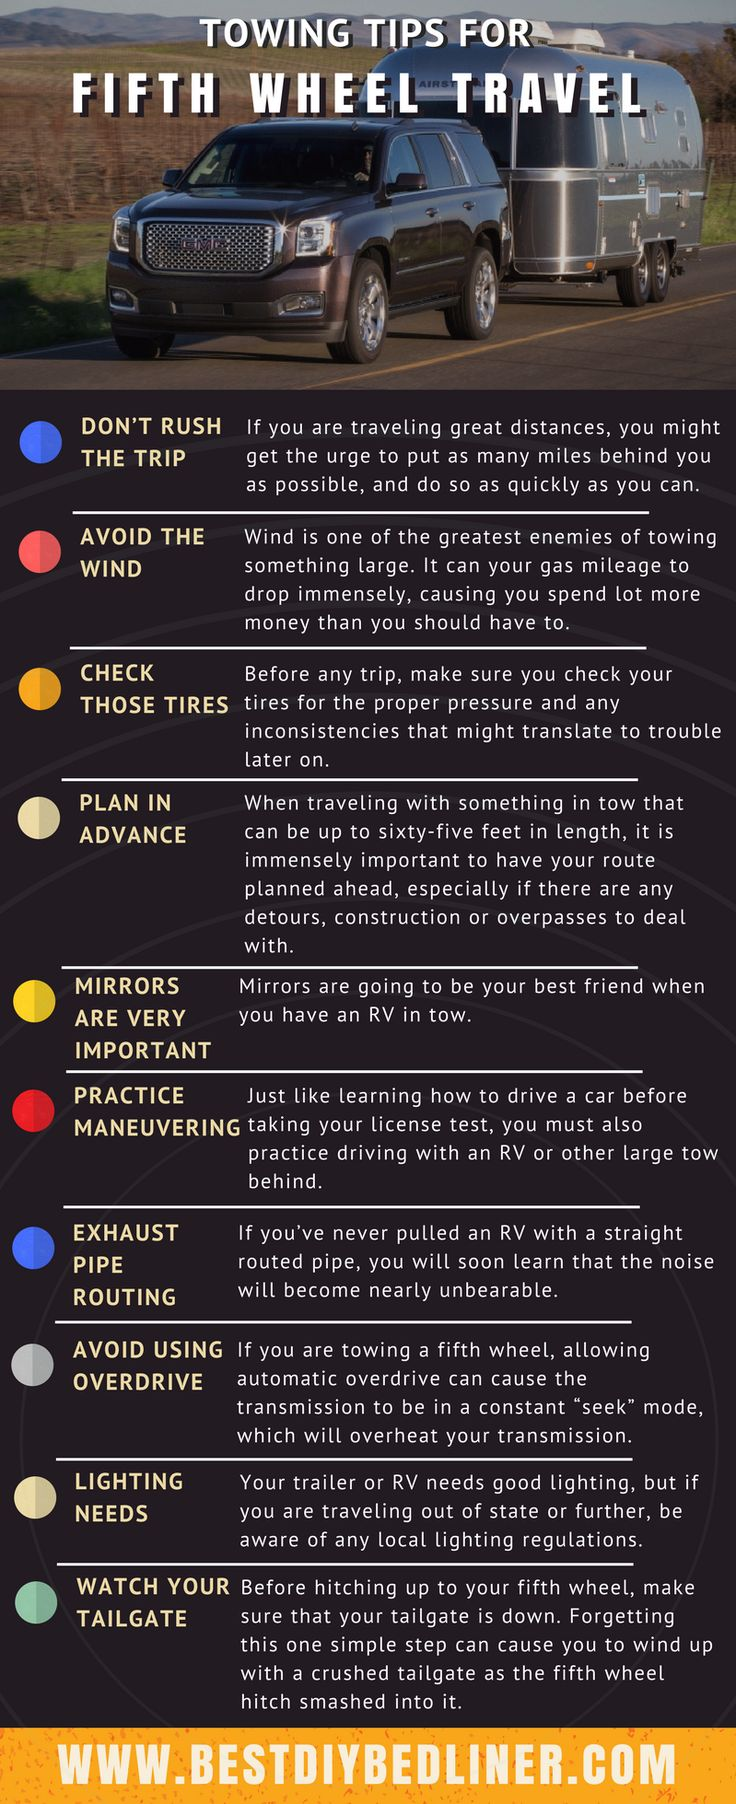 The #fifthwheel is put all the weight on the bumper. So, it's important to know some tips while attaching the fifth wheel on towing vehicle. In this infographic, I have listed tips for the fifth wheel. https://www.bestdiybedliner.com/travel-trailer-vs-fifth-wheel/